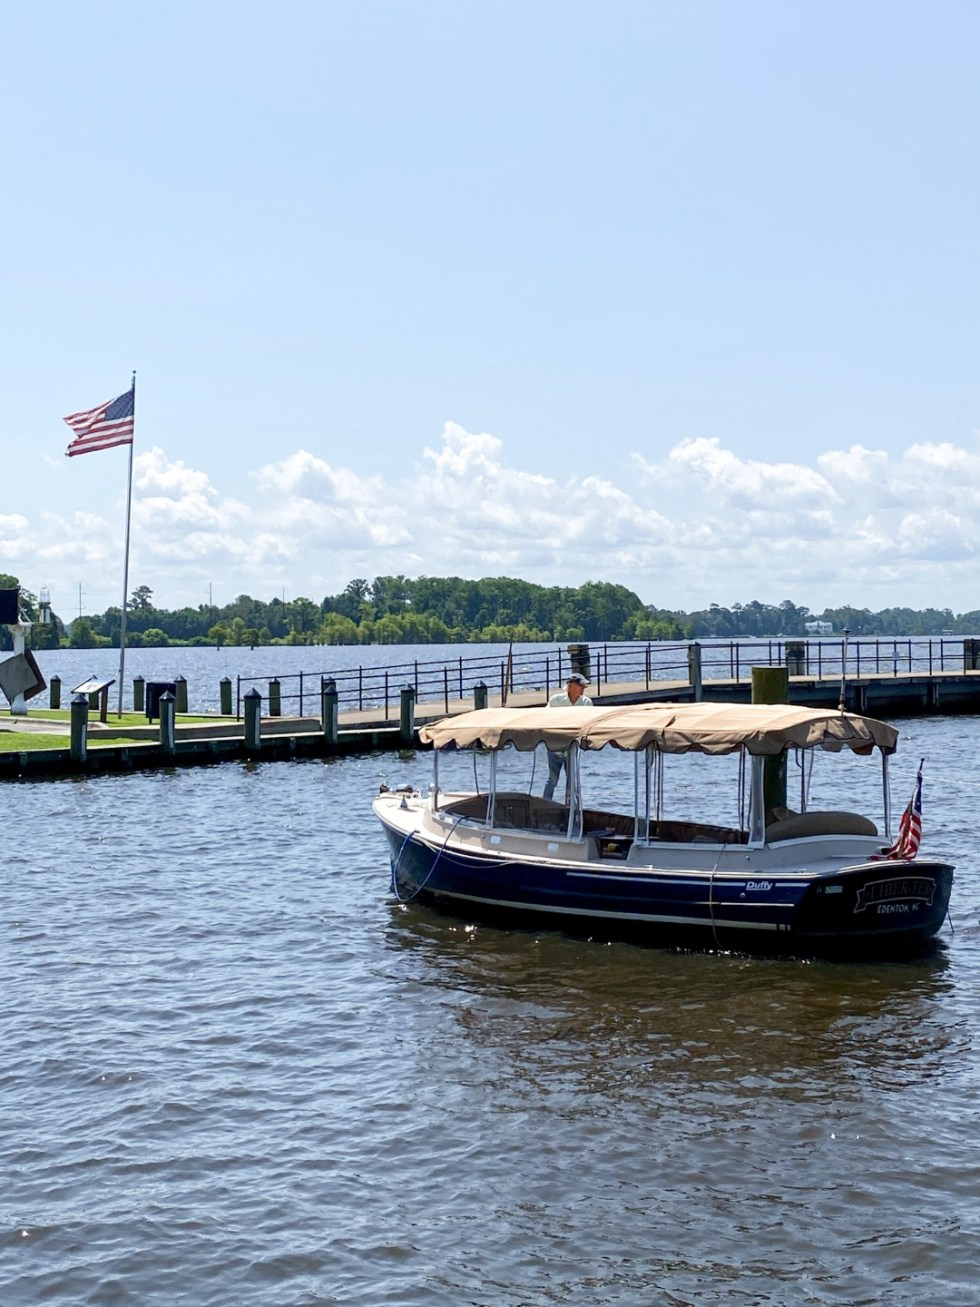 Top 10 Best Things to Do in Edenton, NC: A Complete Travel Guide - I'm Fixin' To - @imfixintoblog | Edenton Travel Guide by popular NC travel guid, I'm Fixin' To: image of a river boat on a river next to a dock.